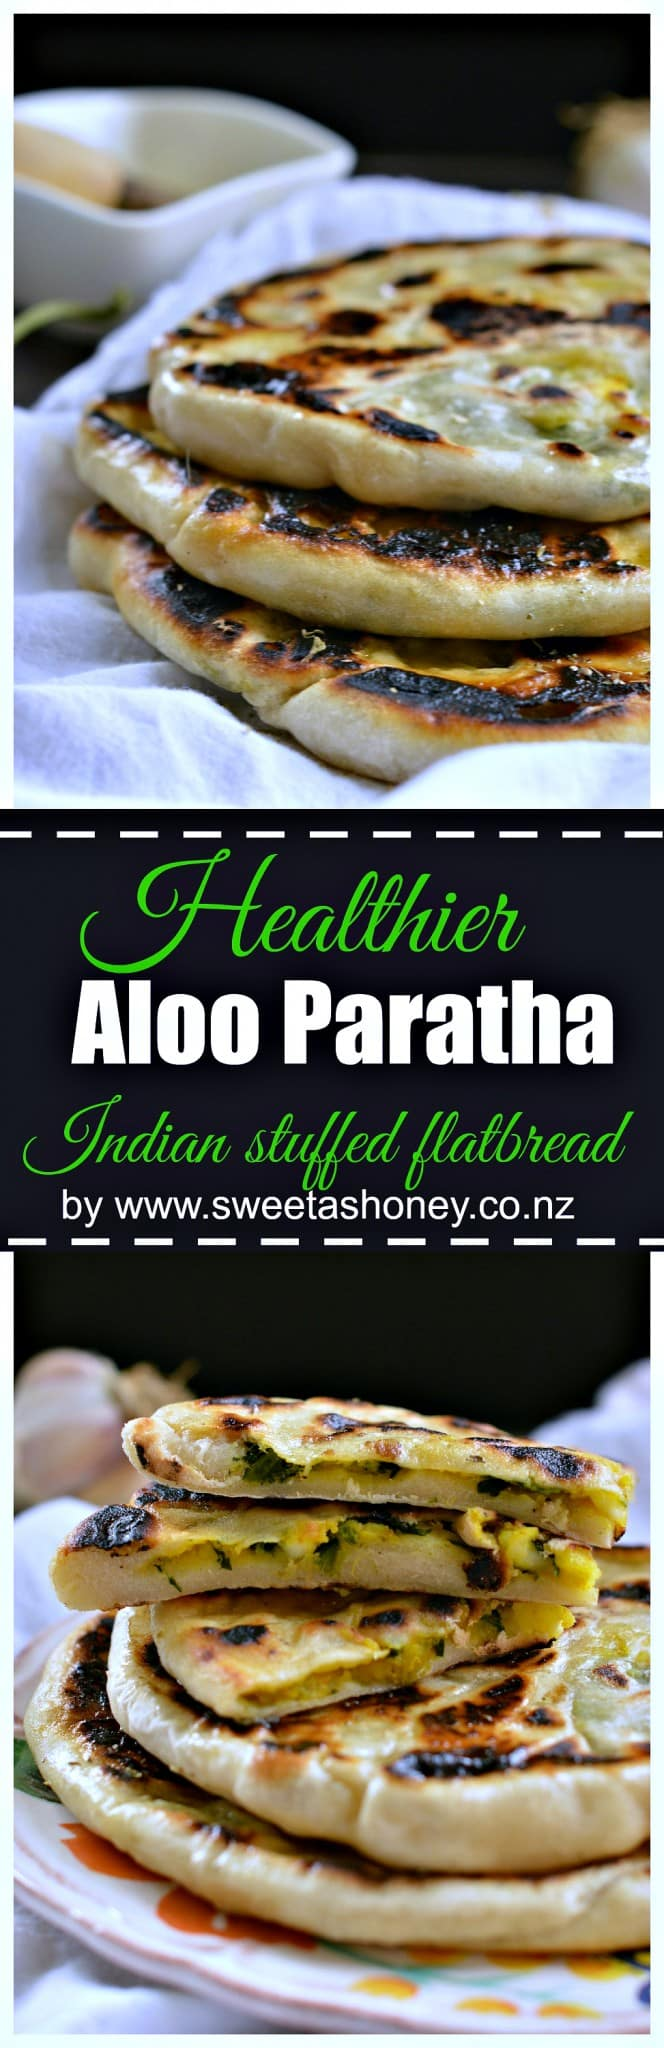 aloo paratha stuffed bread